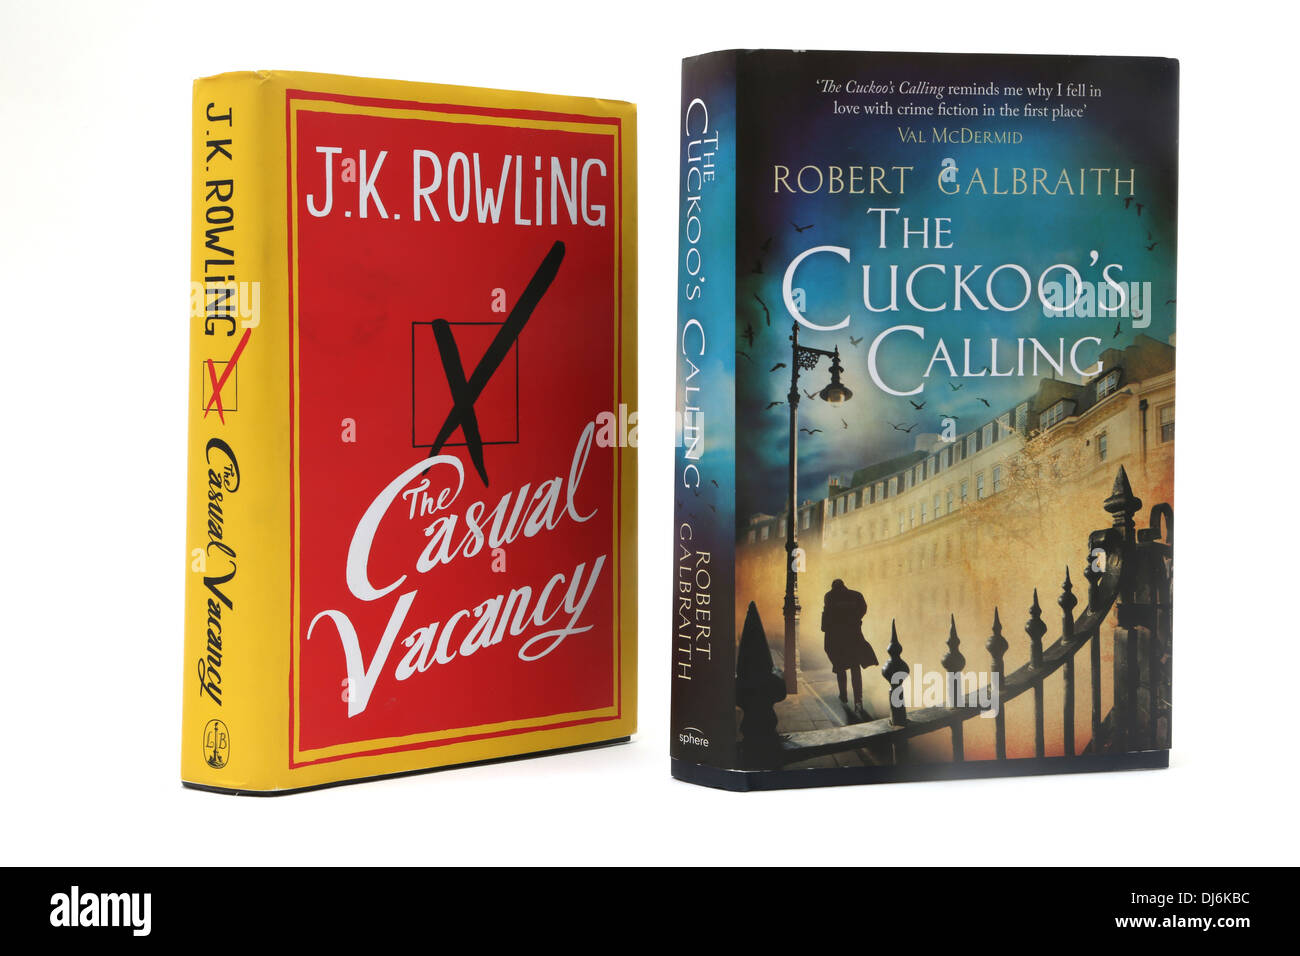 Hardback Books The Casual Vacancy and The Cuckoo's Calling Both By J.K Rowling - Stock Image